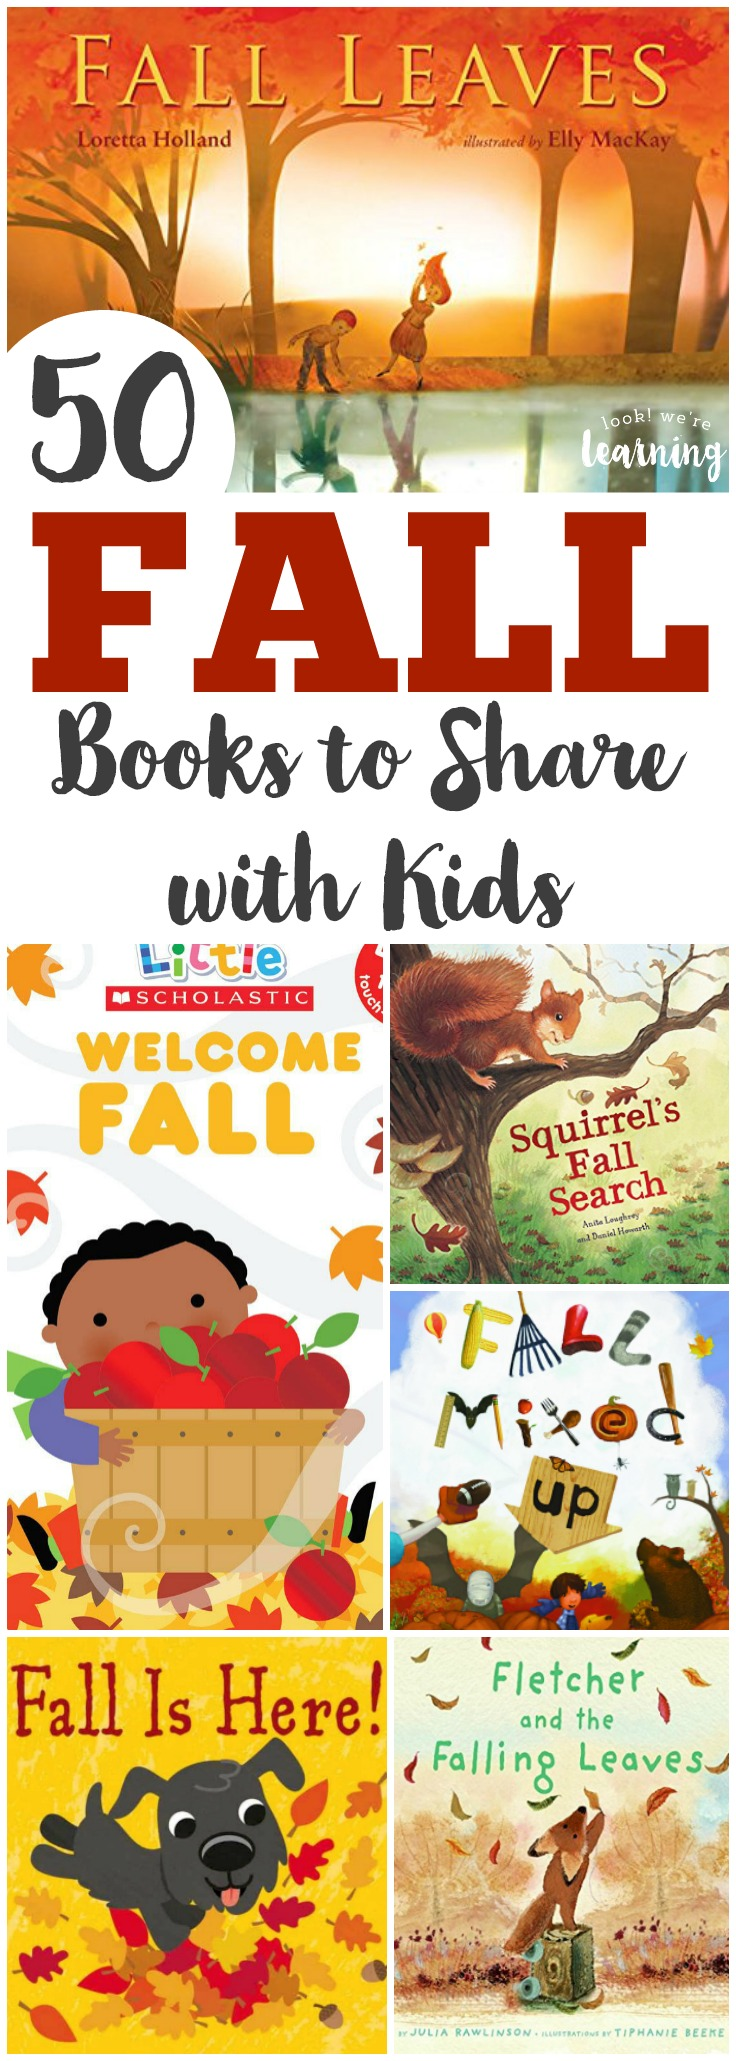 Fall is a wonderful time of year for sharing stories with the children. Here is a list of 50 wonderful fall books for kids this autumn!